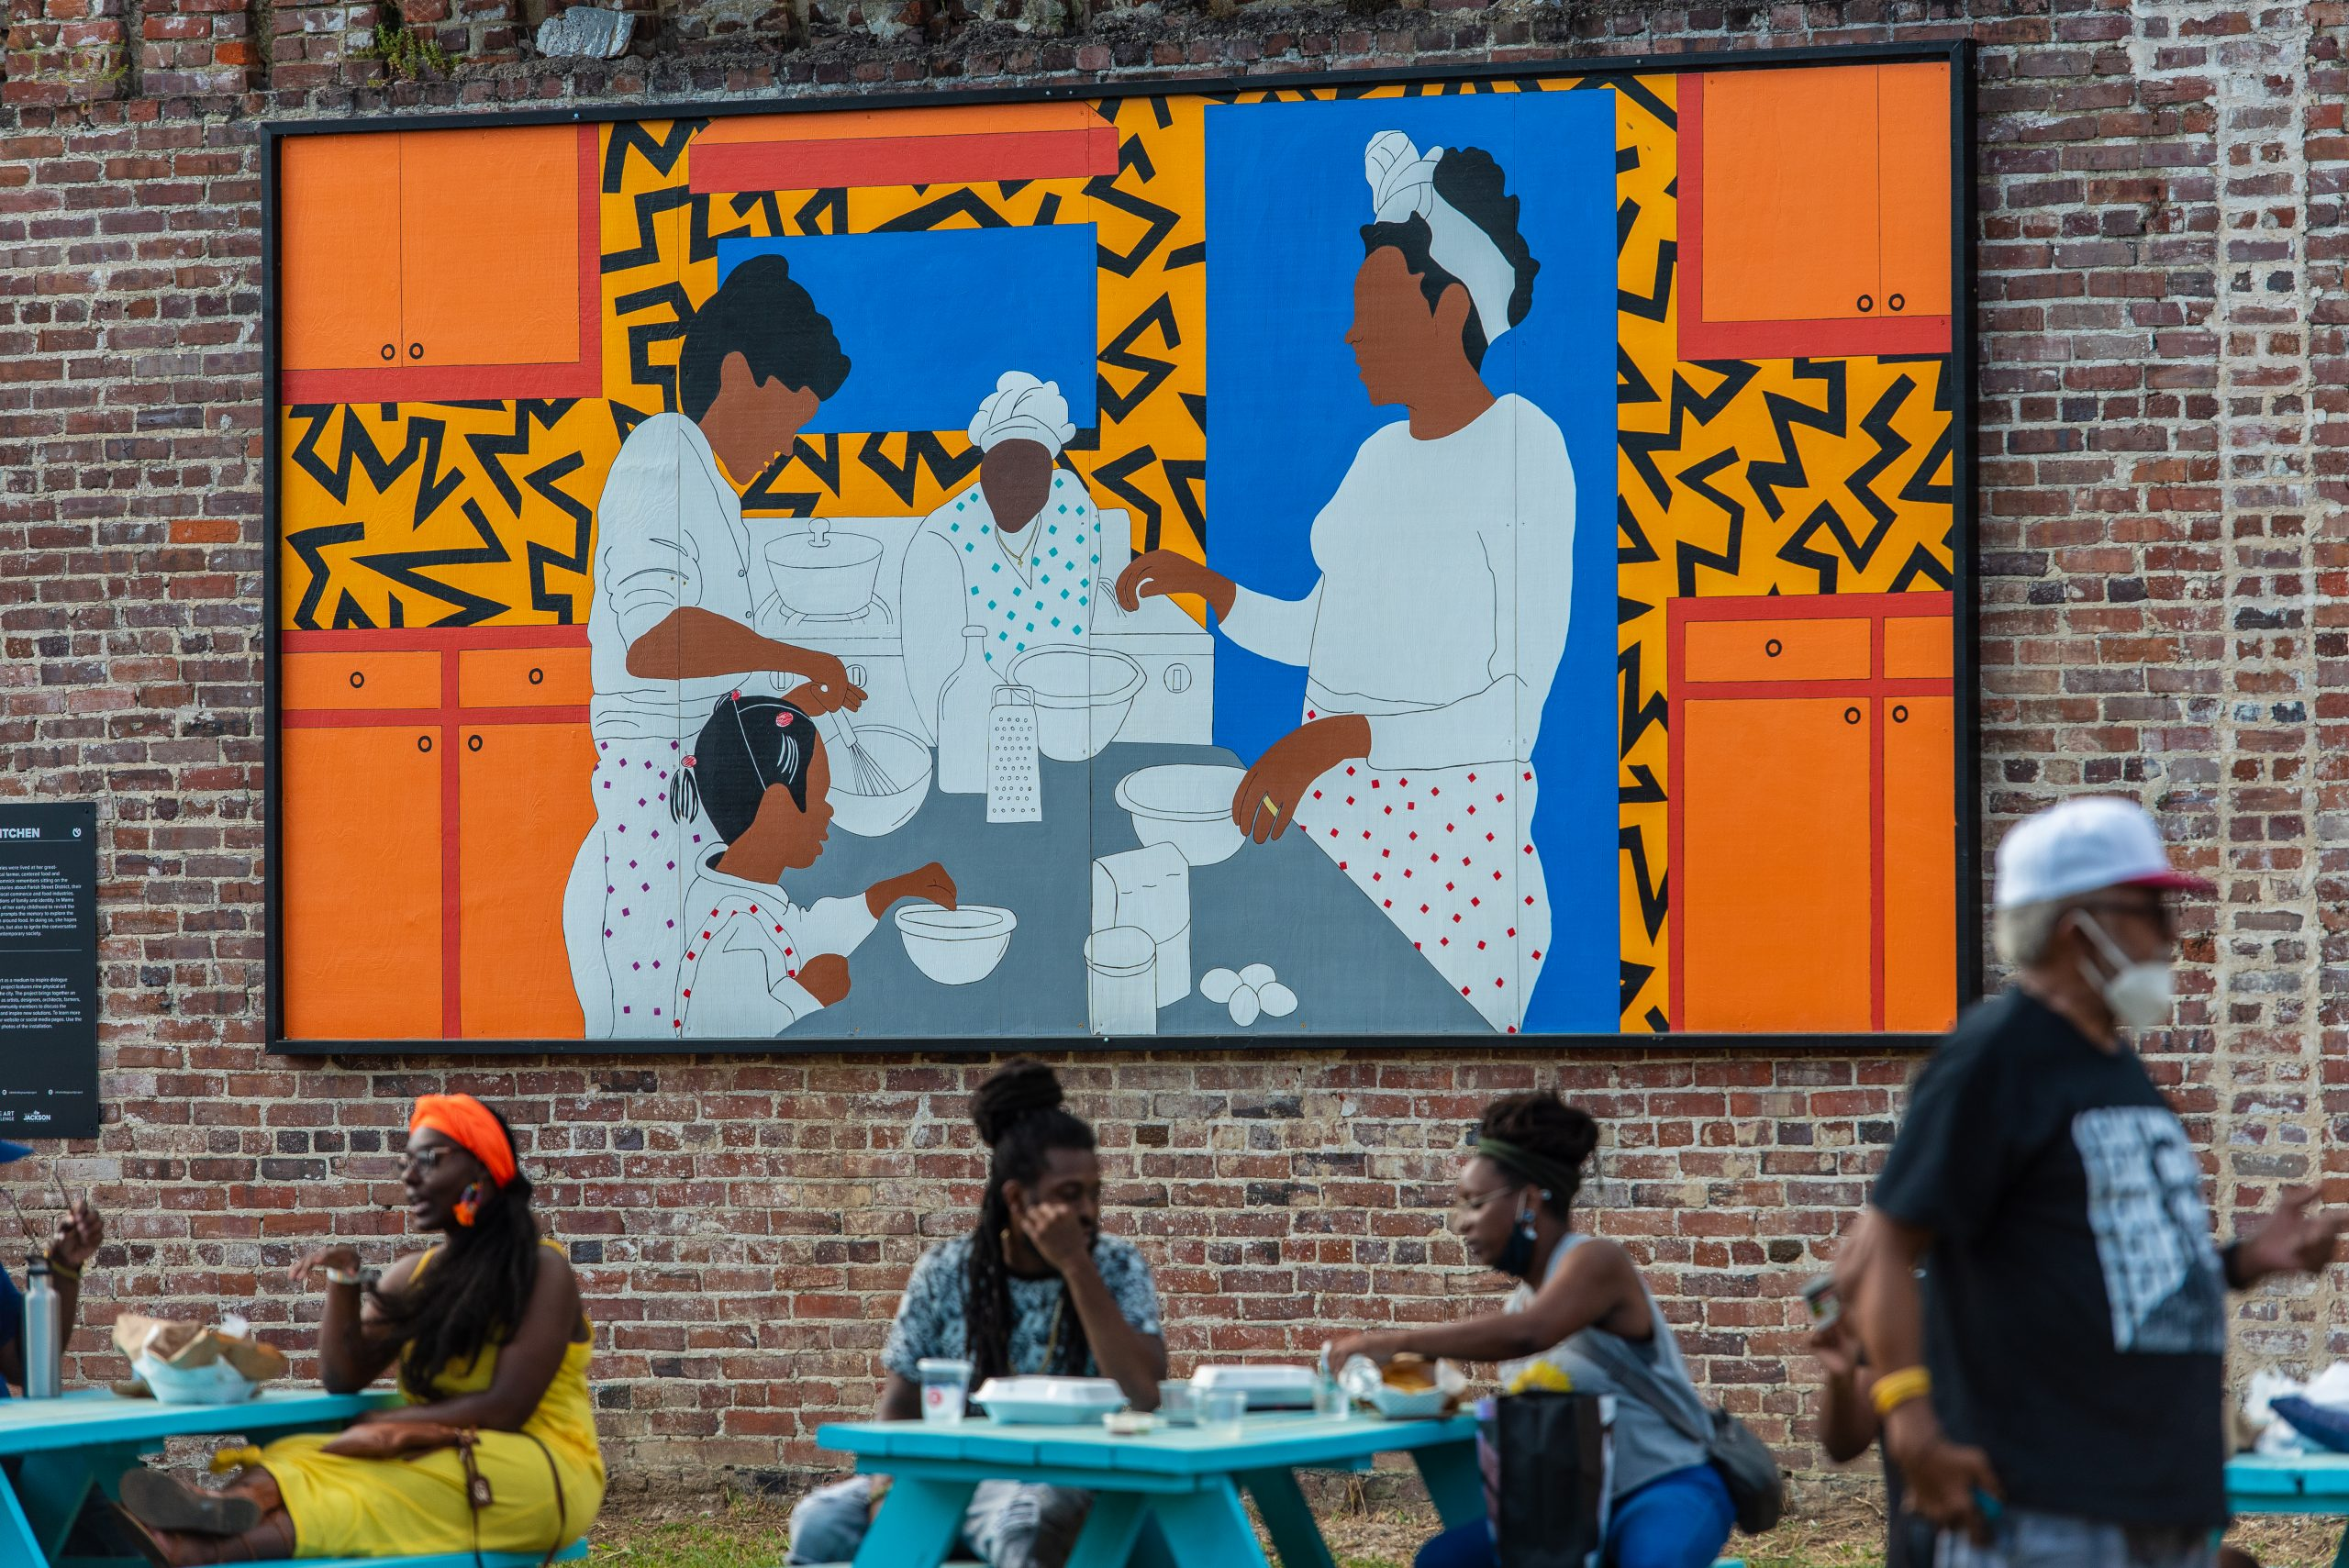 People eating and talking at tables in front of a large mural of a family at a table